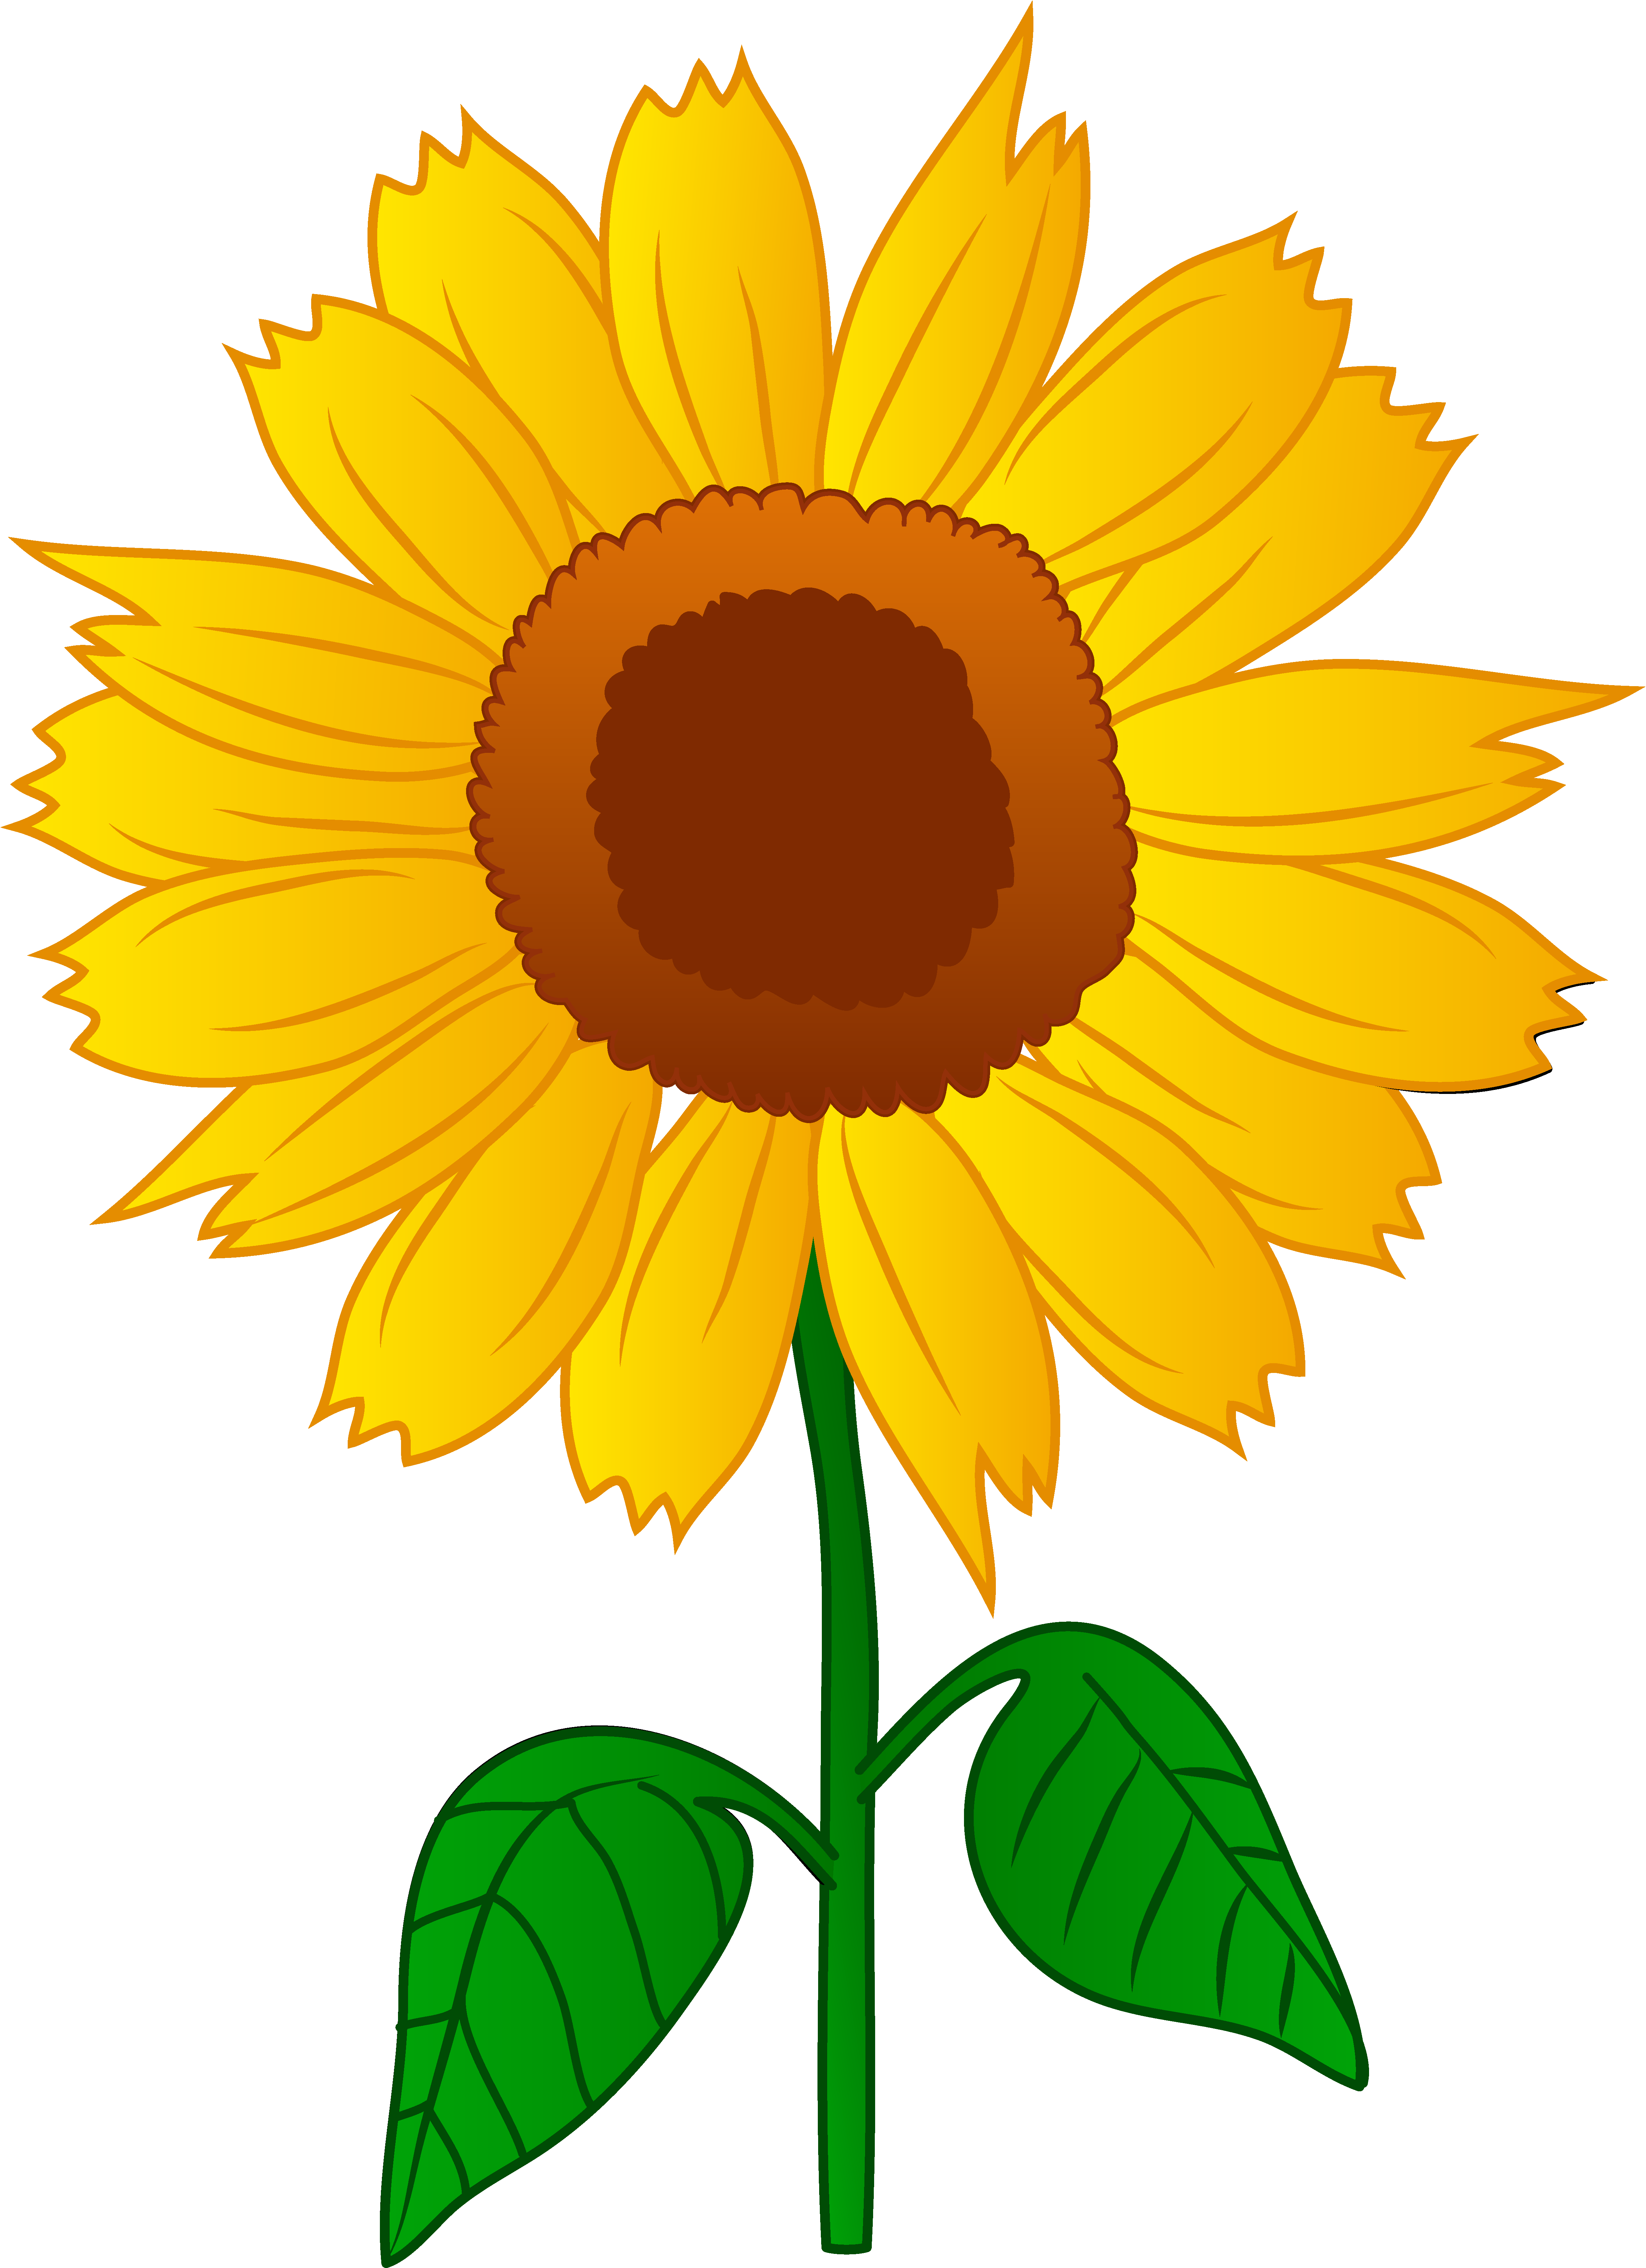 Sunflower Clipart Images | Clipart Panda - Free Clipart Images